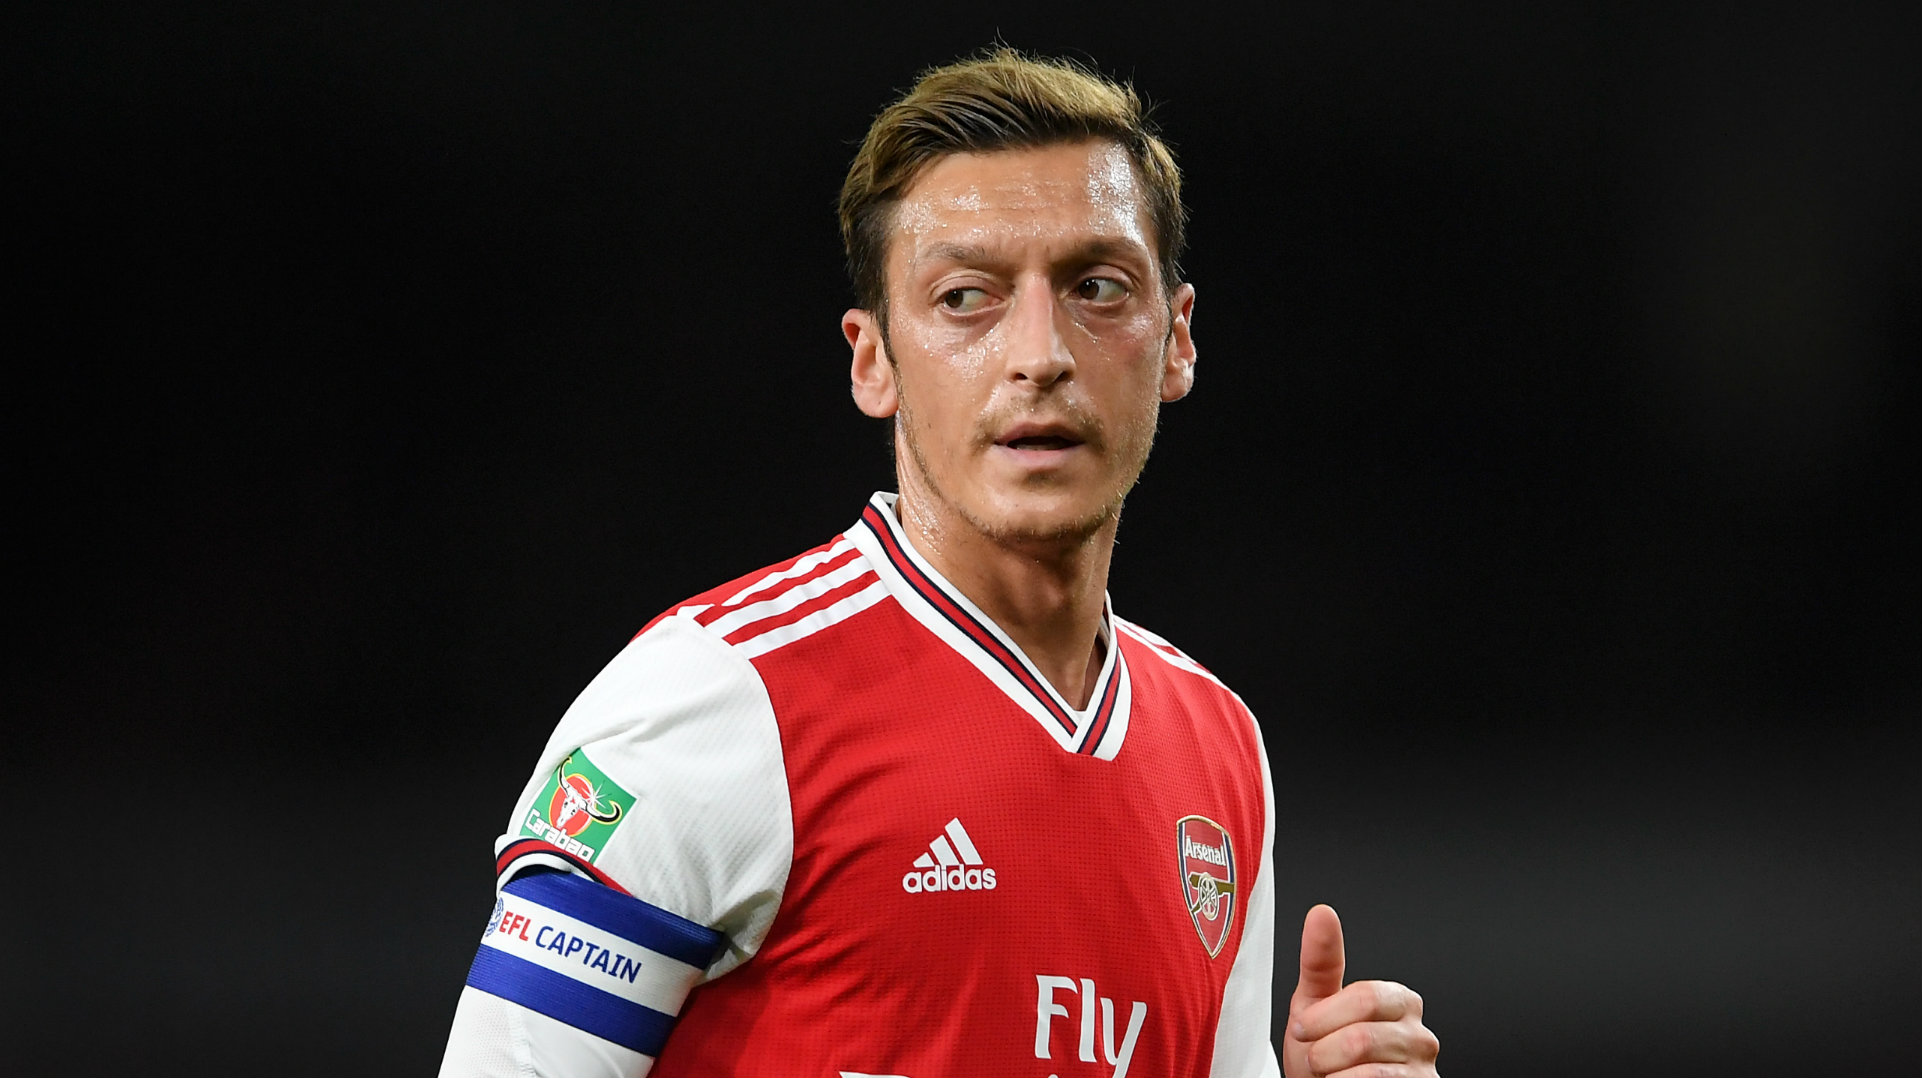 'Everyone at Arsenal respects Ozil' - Elneny opens up on German star's 'humble' nature